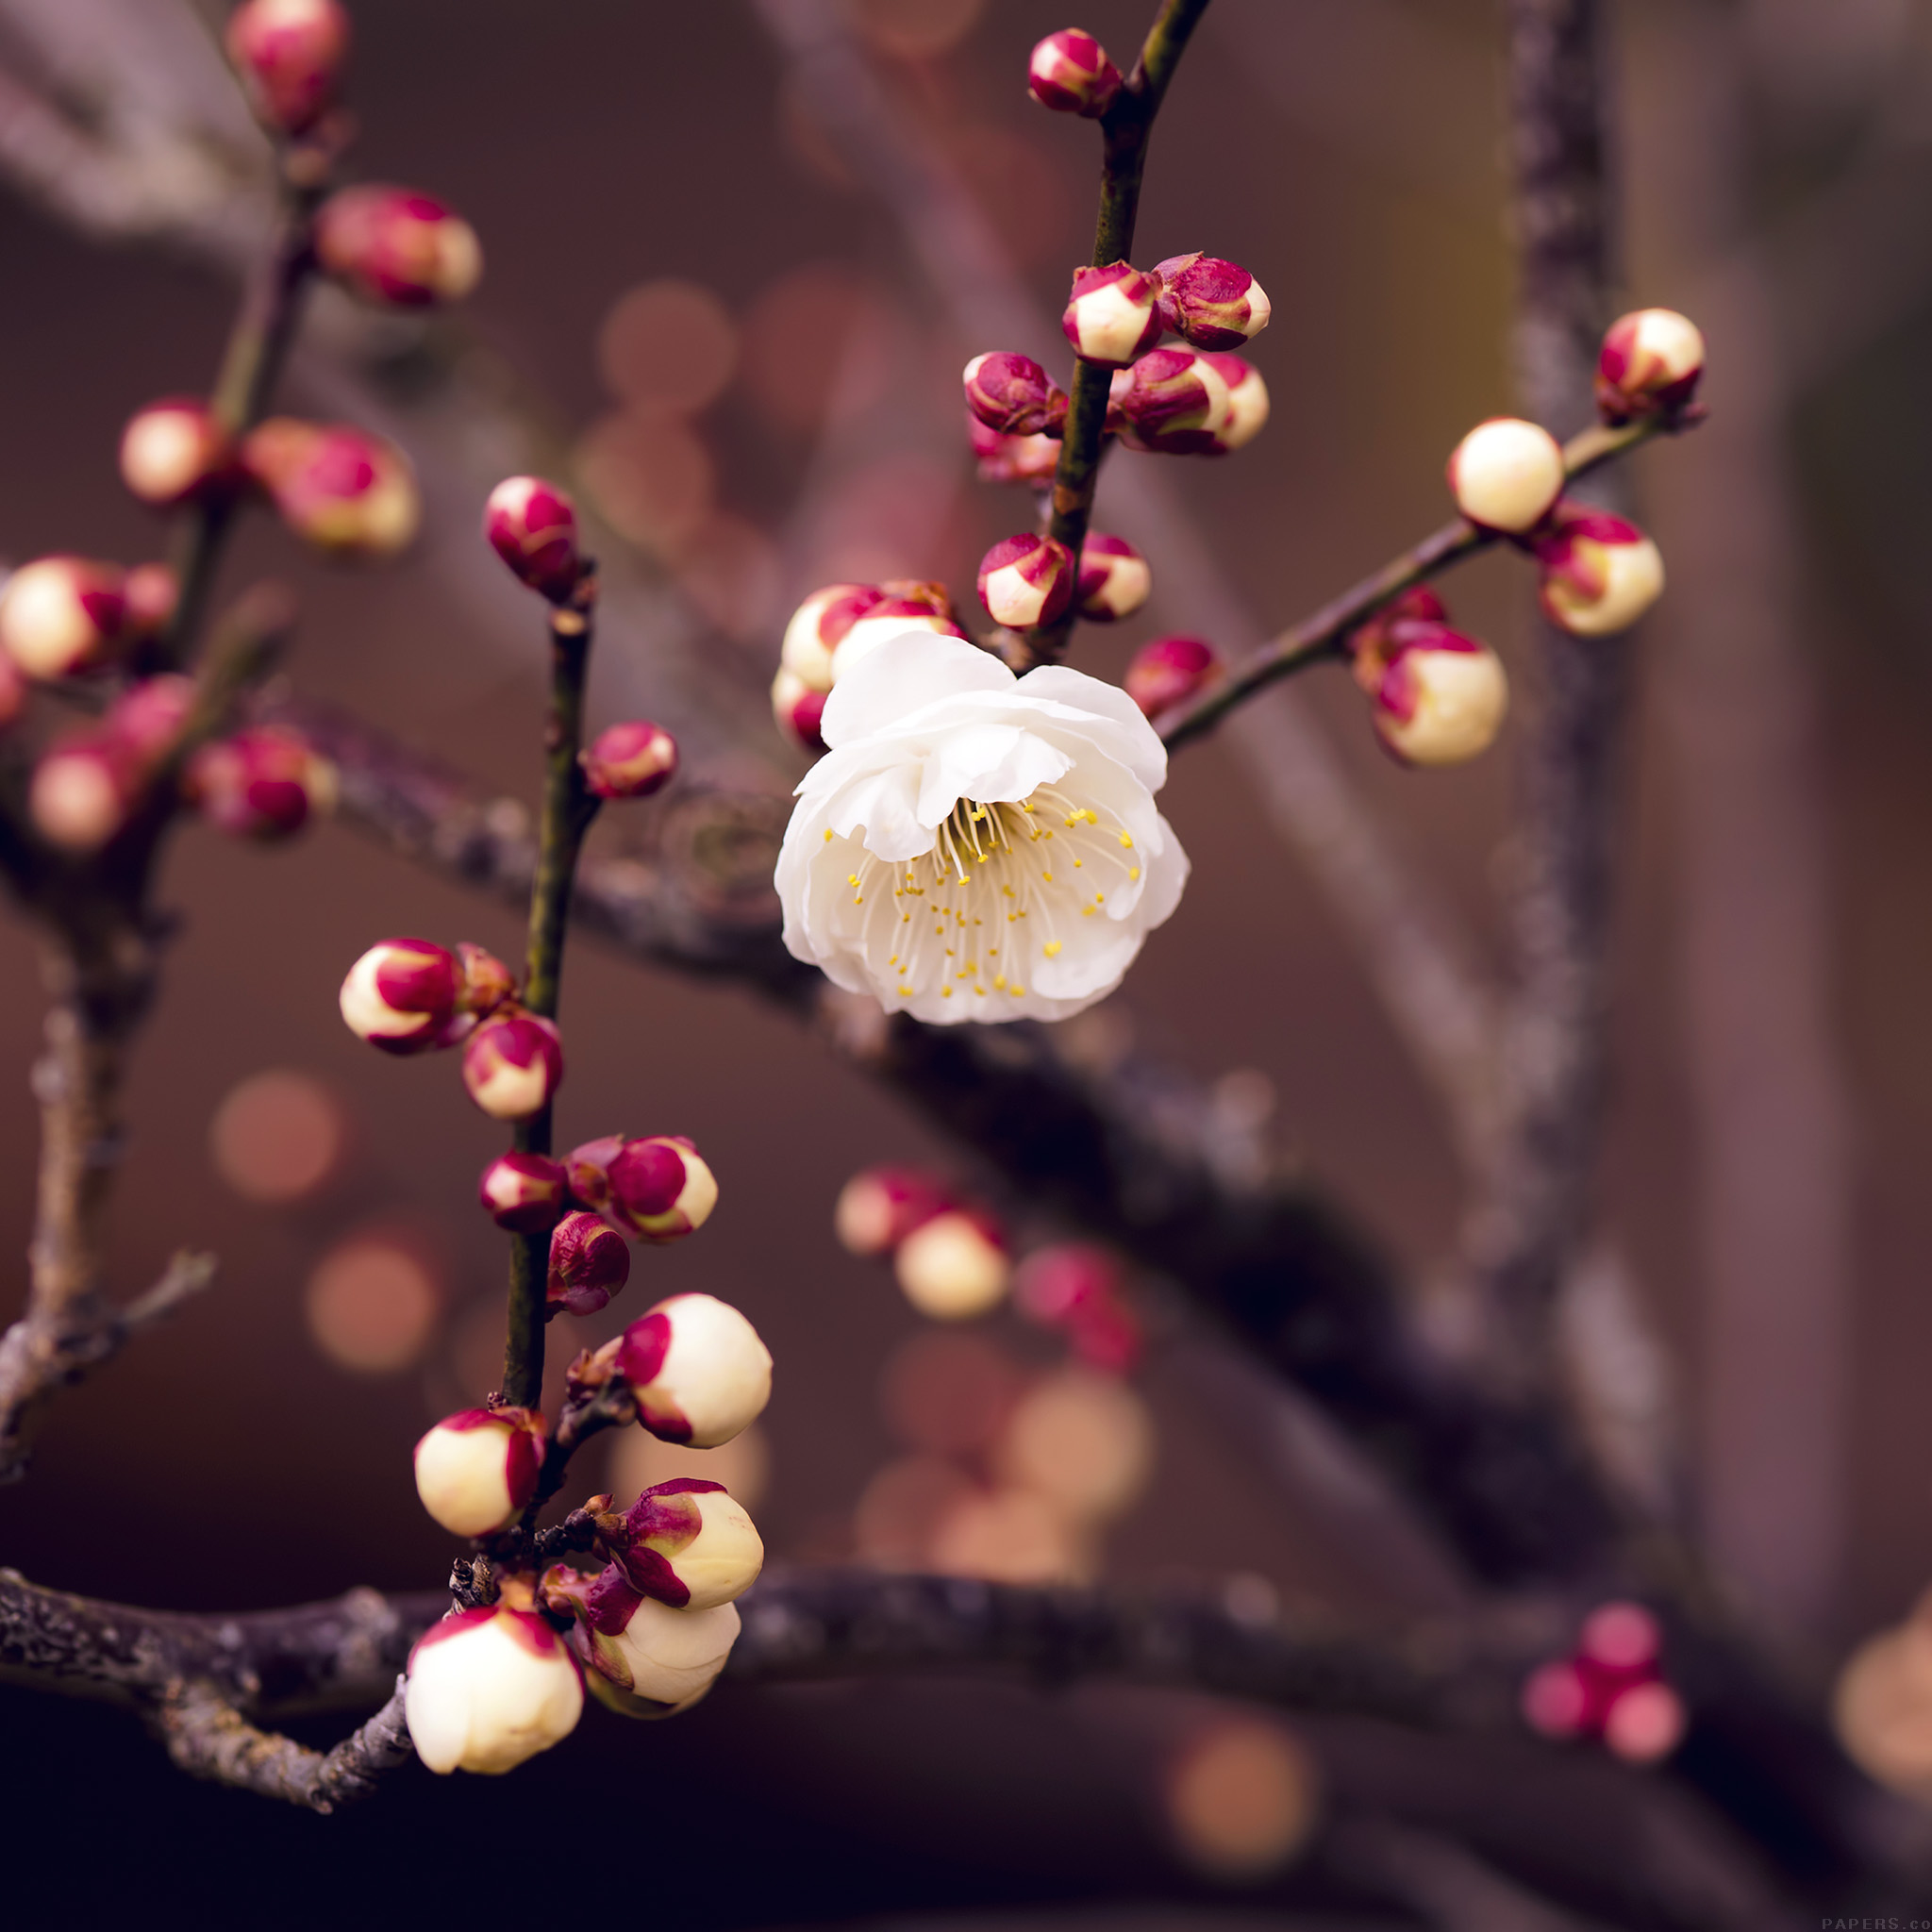 Mp15-apricot-flower-bud-spring-nature-twigs-tree